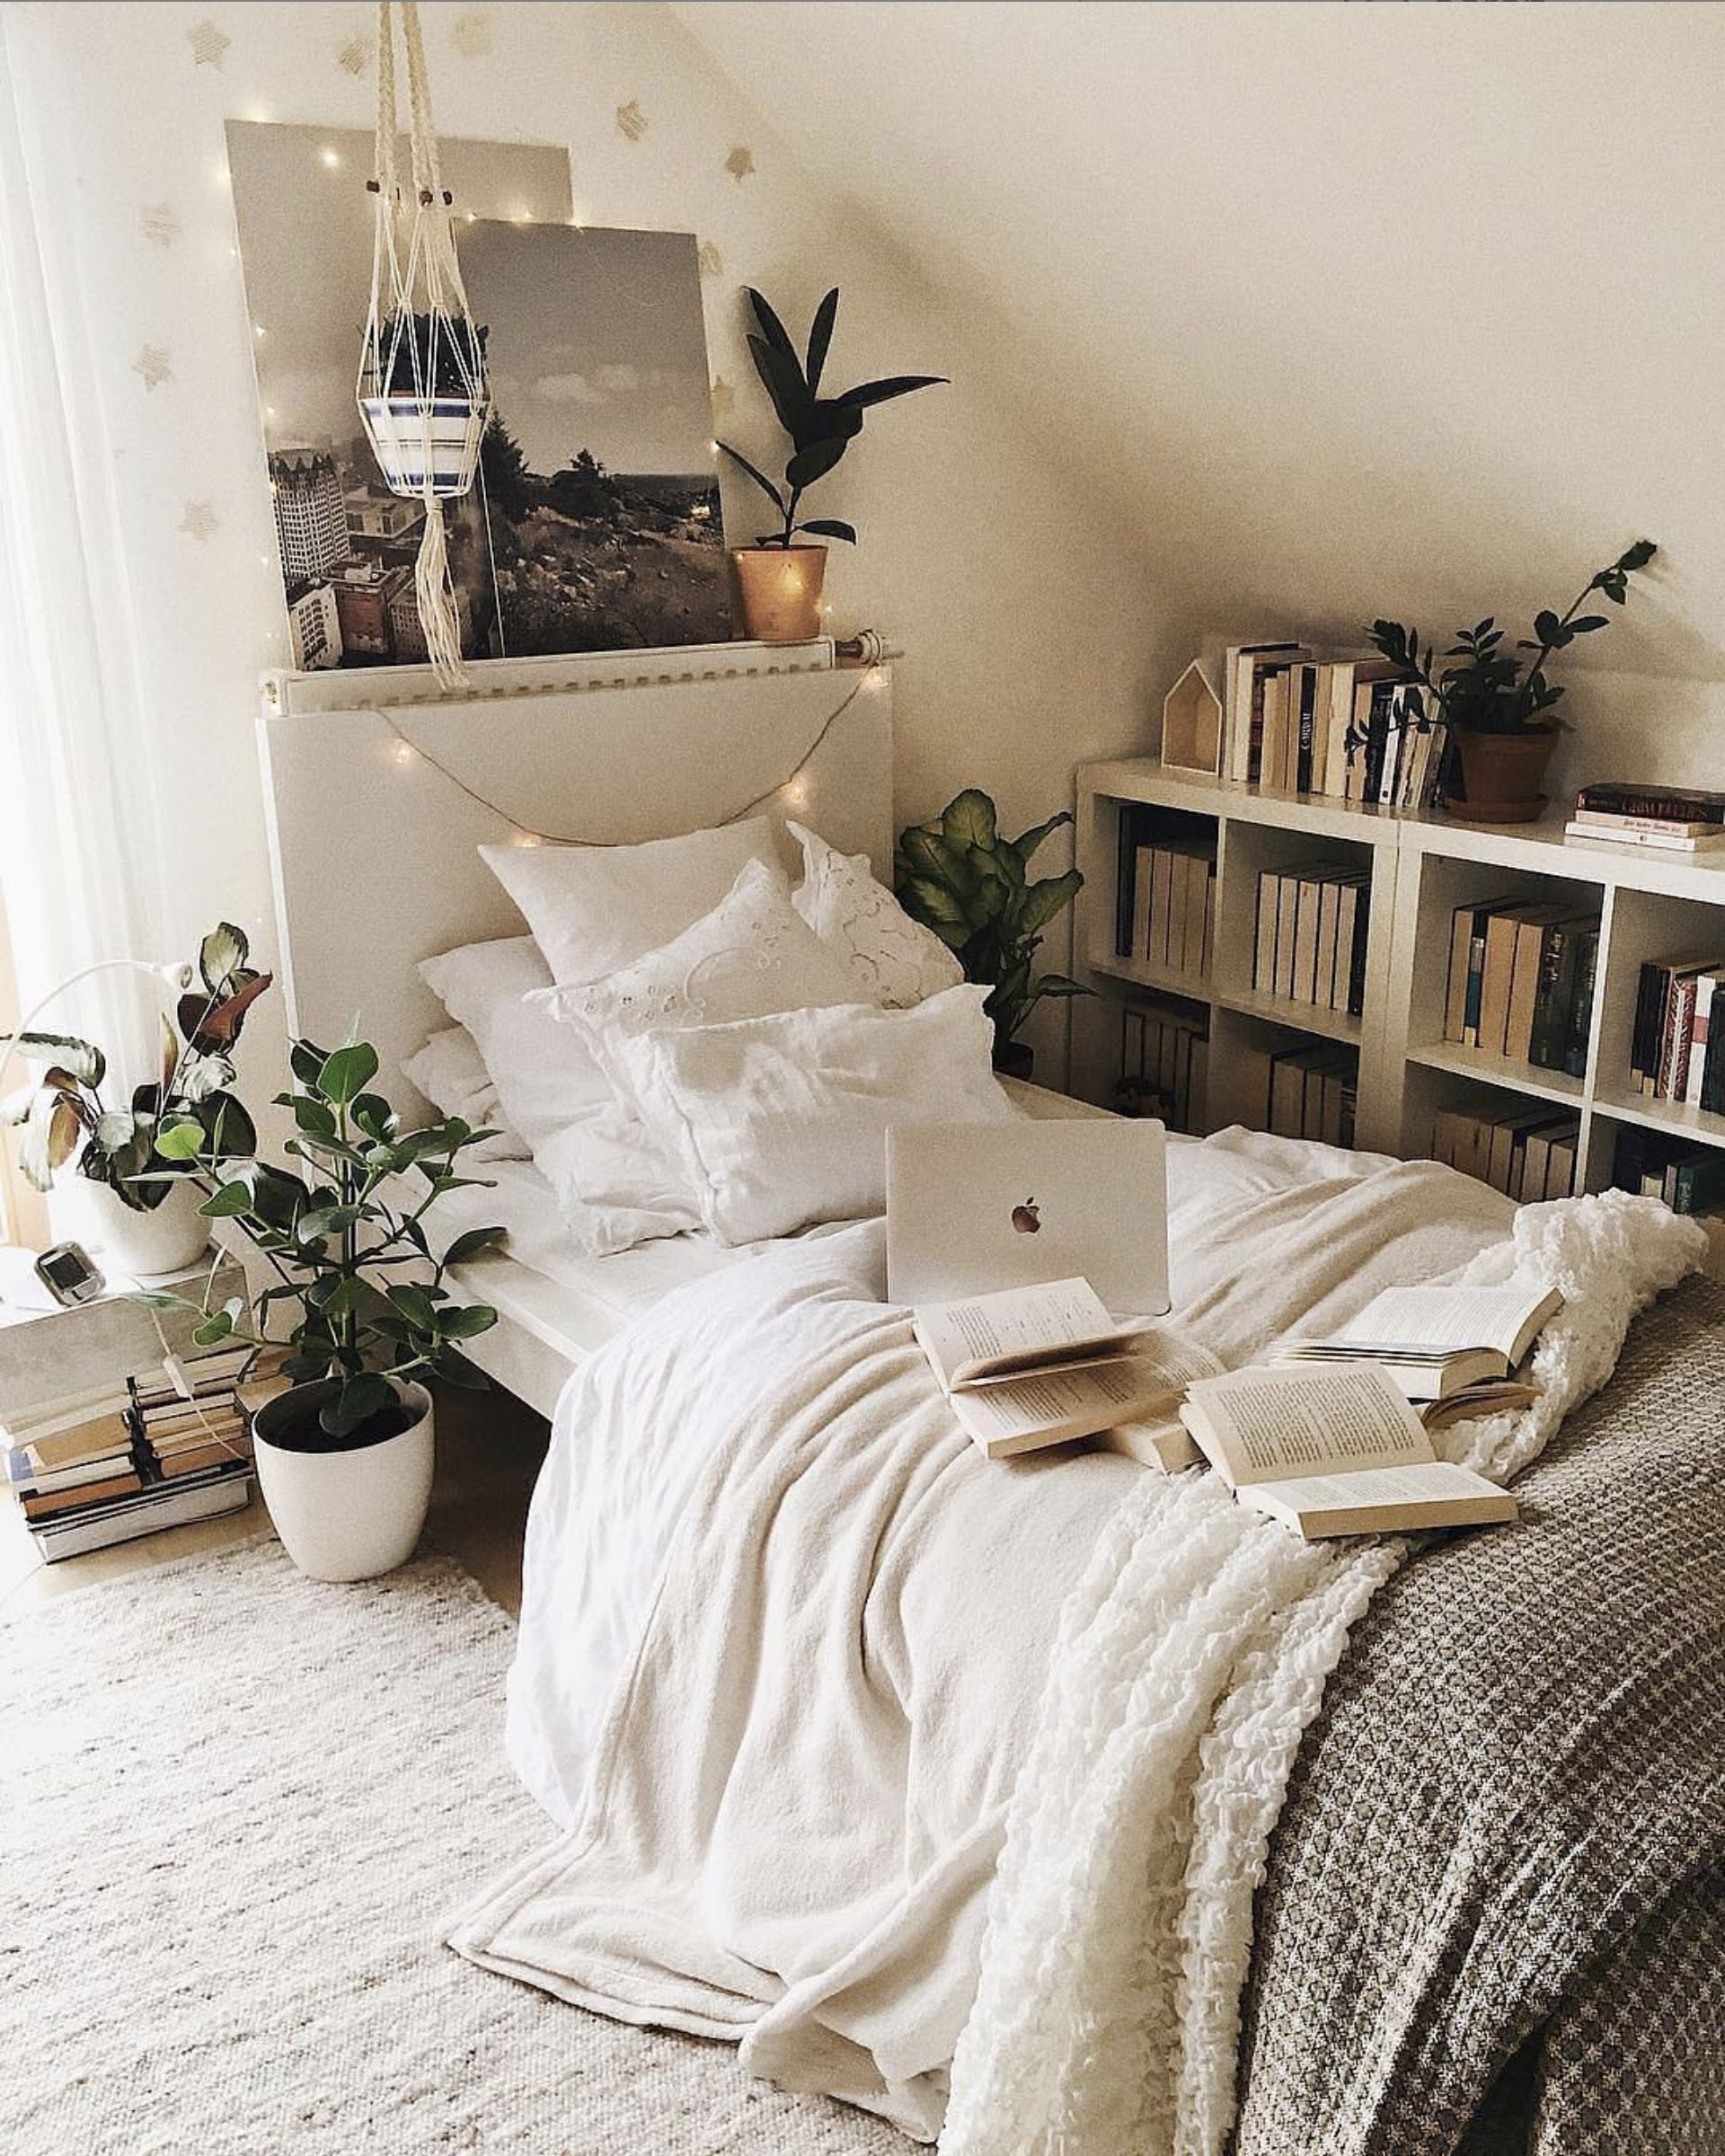 Simple But Cozy Bedroom With Tons Of Books And Plants By